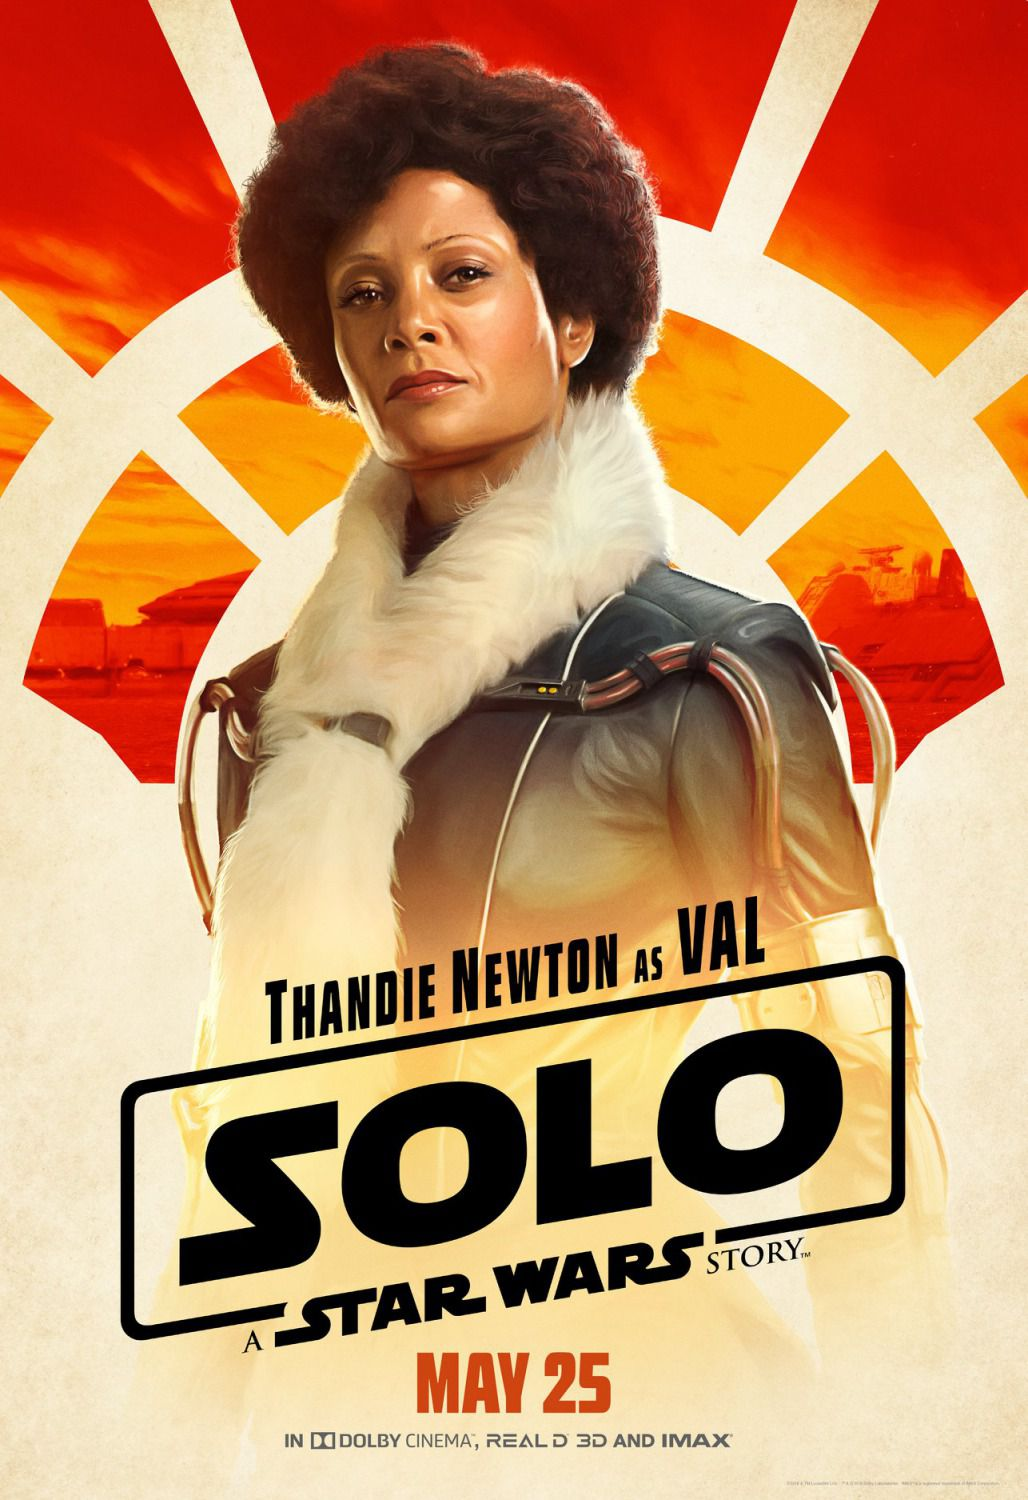 Thandie Newton as Val